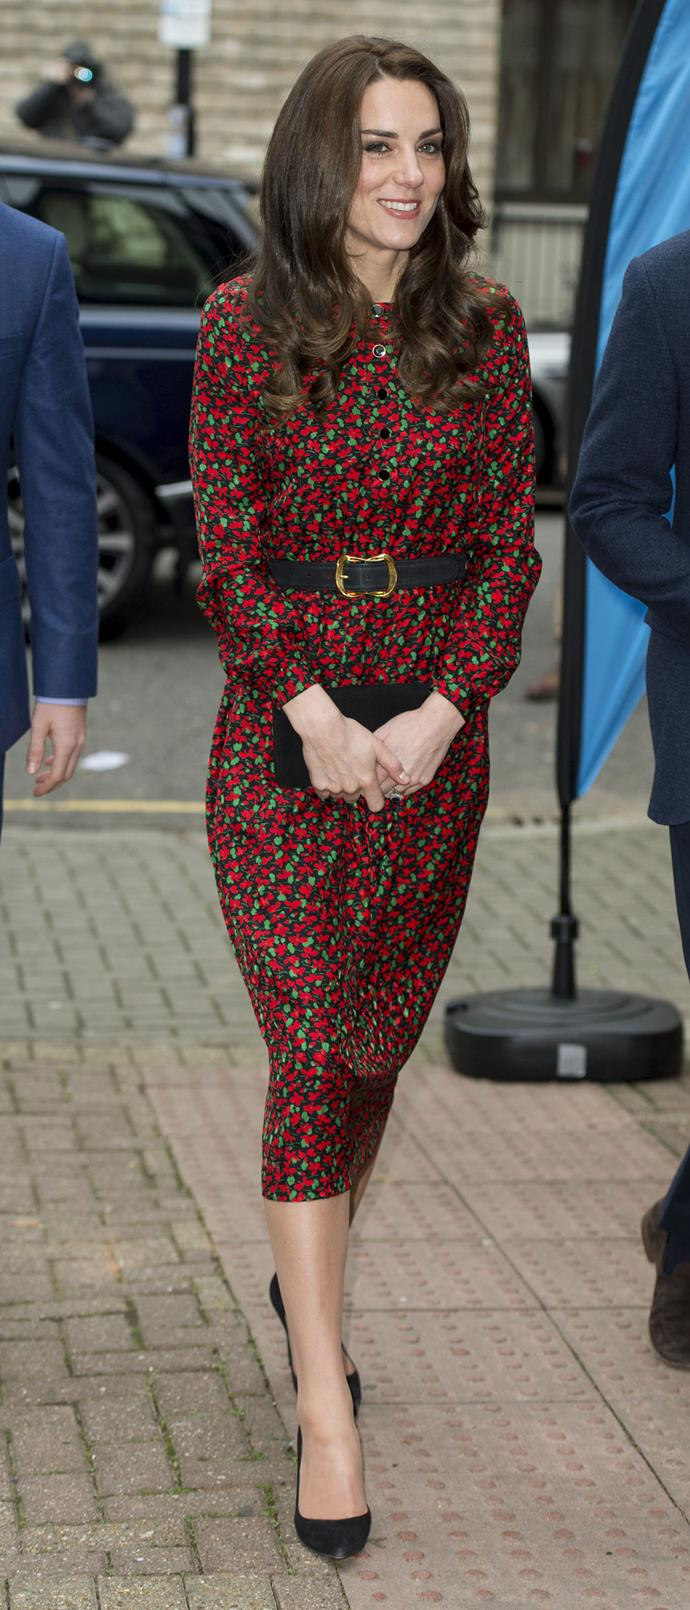 The Duchess of Cambridge attends a Christmas party for volunteers at The Mix youth service wearing Vanessa Seward on 19 December 2016.